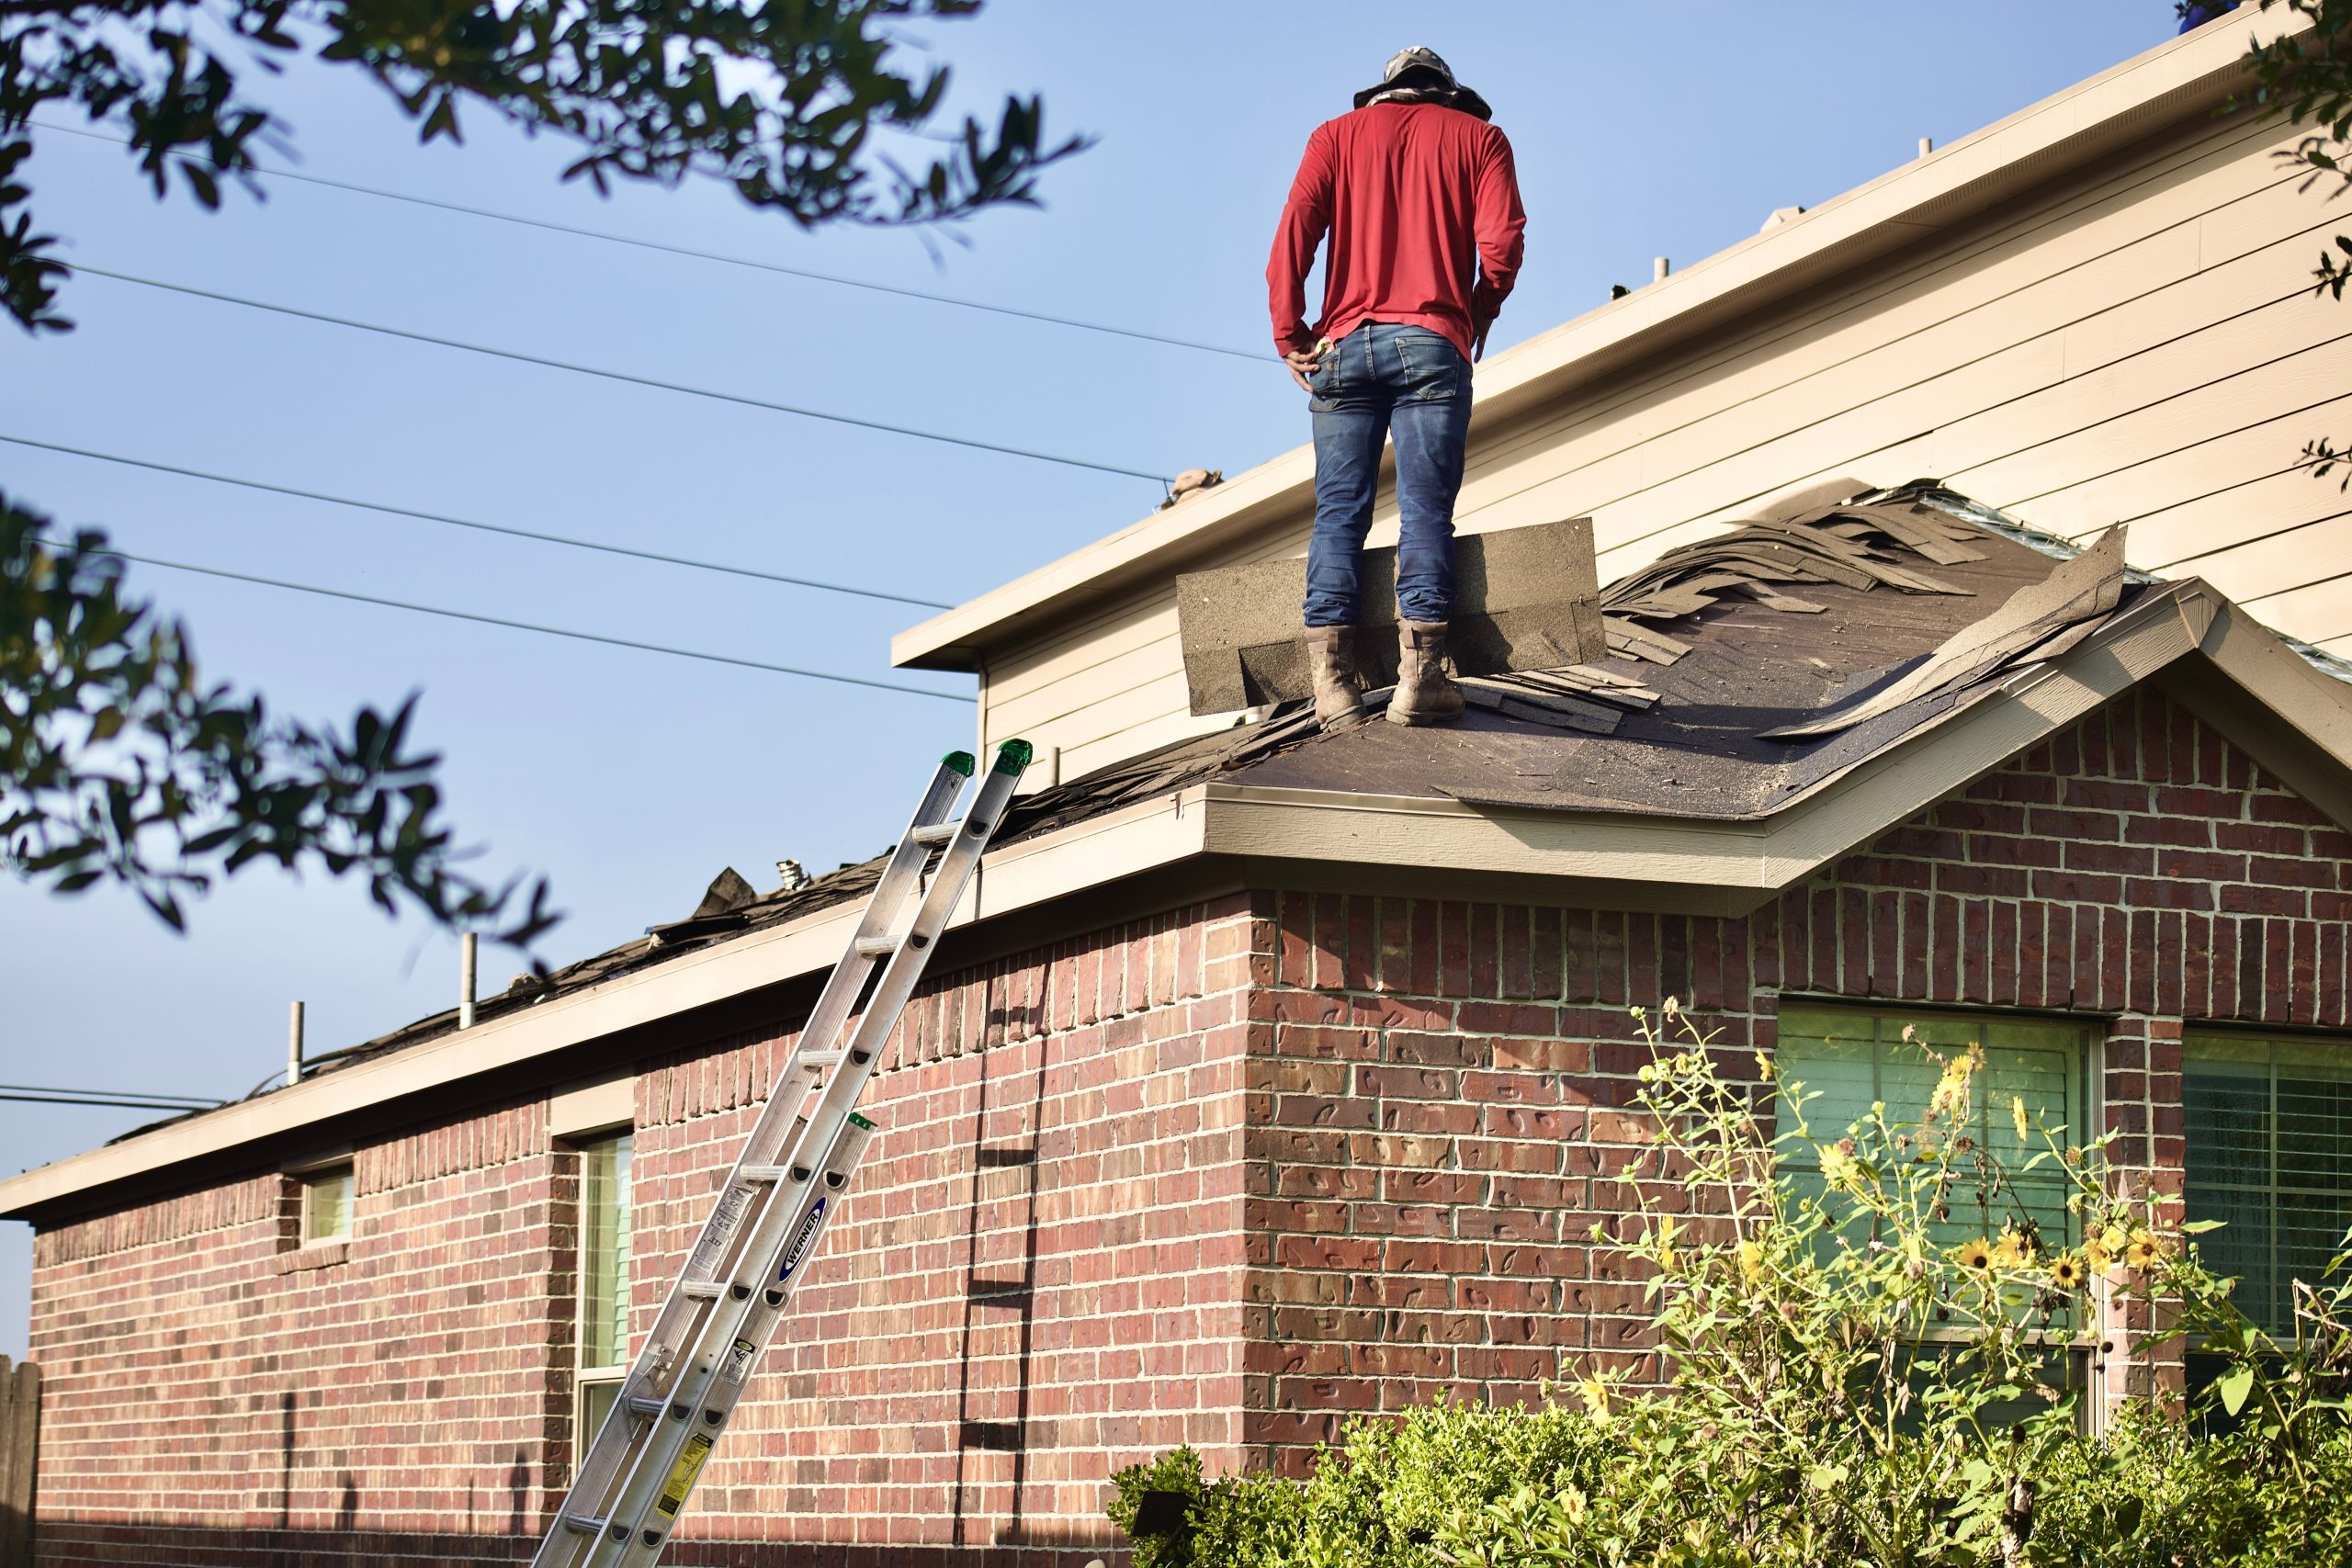 A man is fixing a roof